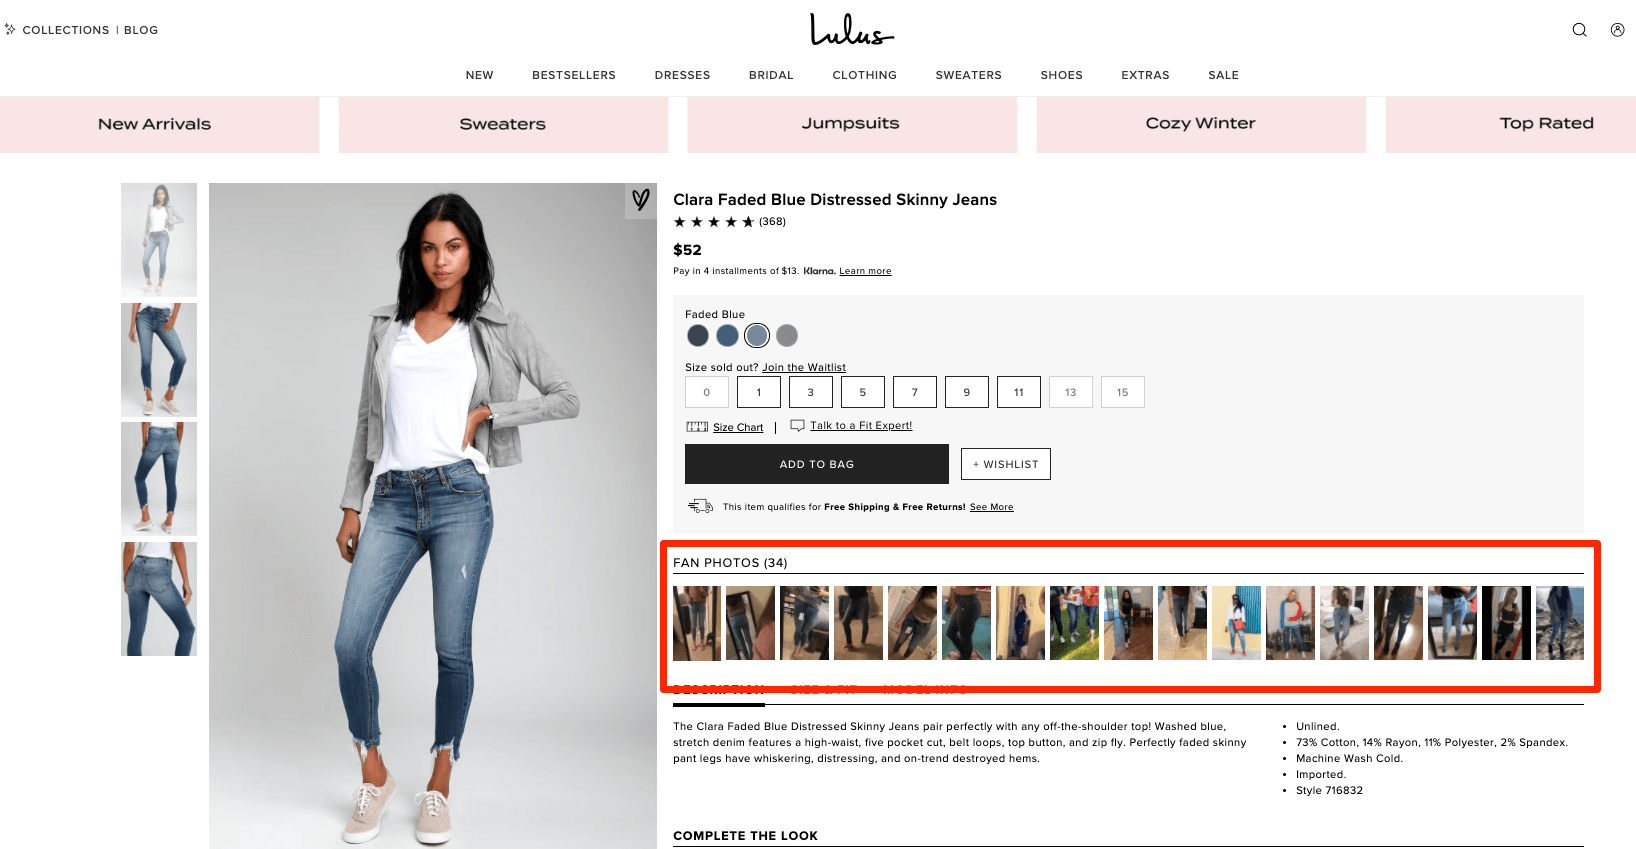 example of user generated content